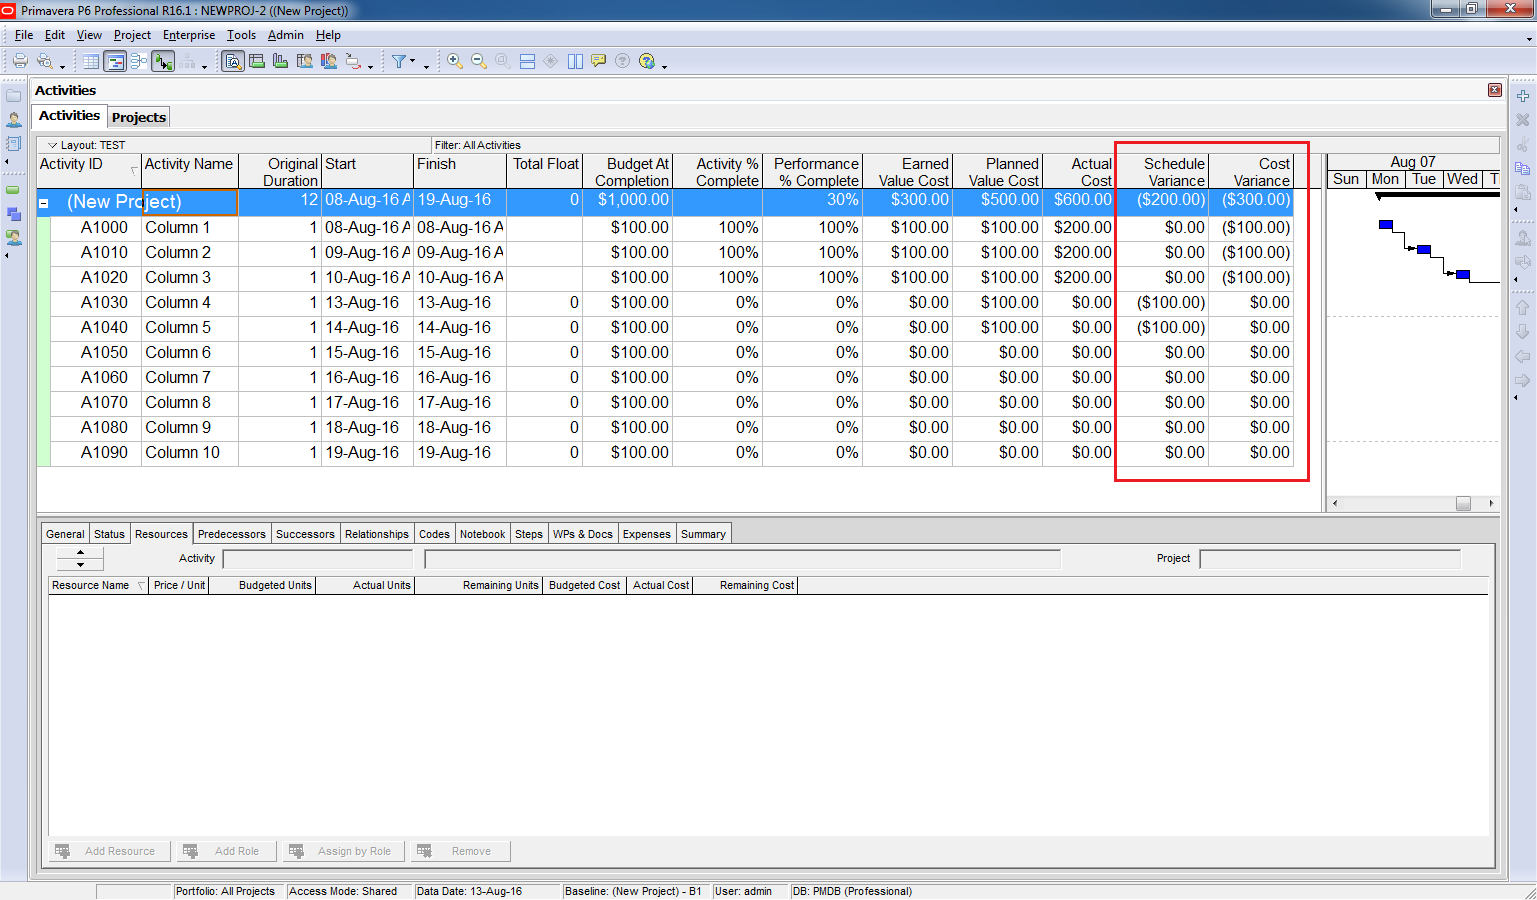 How to use Earned Value Management in Primavera P6 - 8